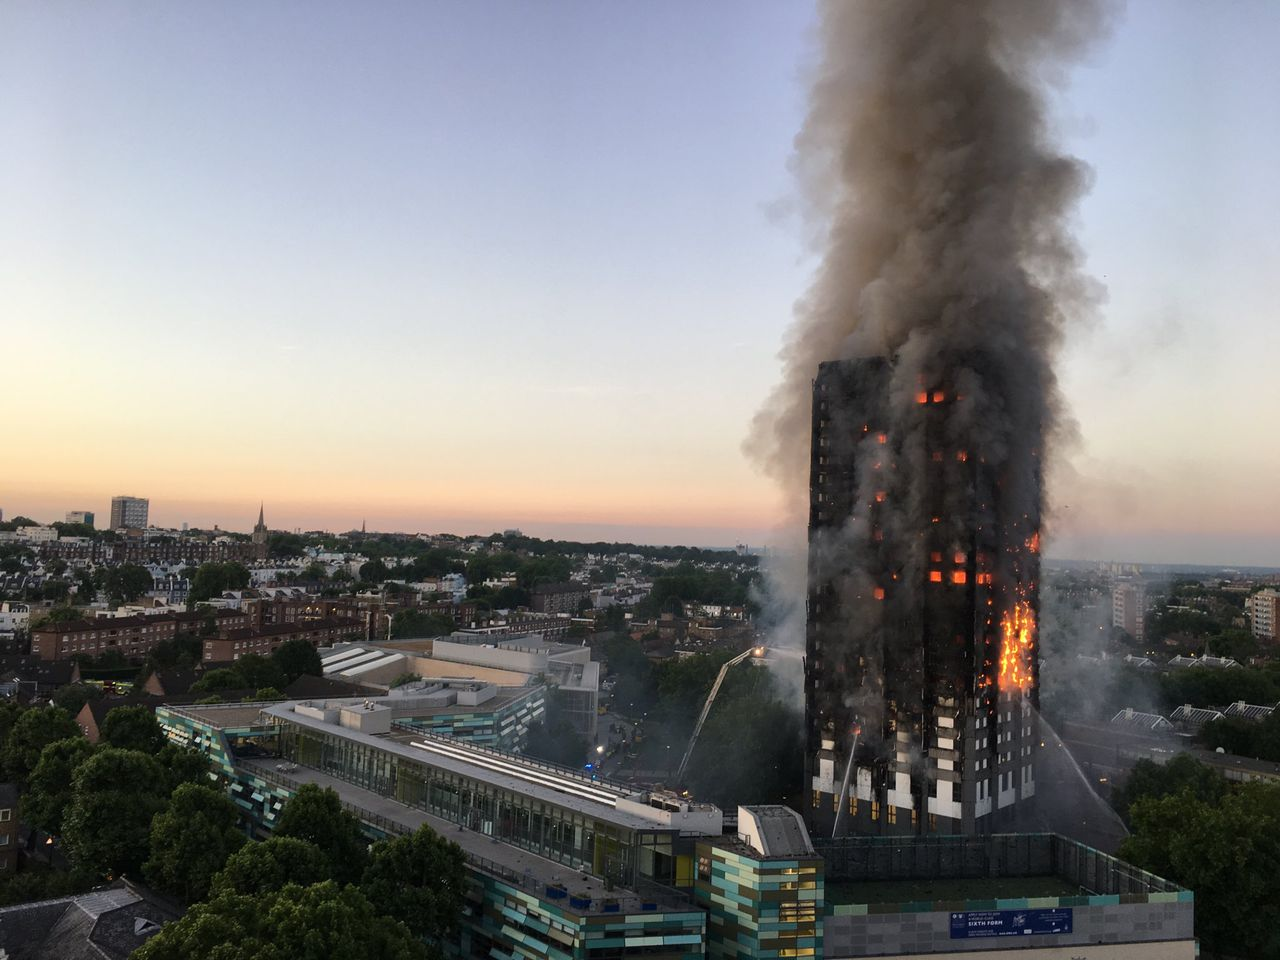 Jack Thorne's Grenfell tragedy inspired TV drama, The Accident, raises attention on corporate manslaughter